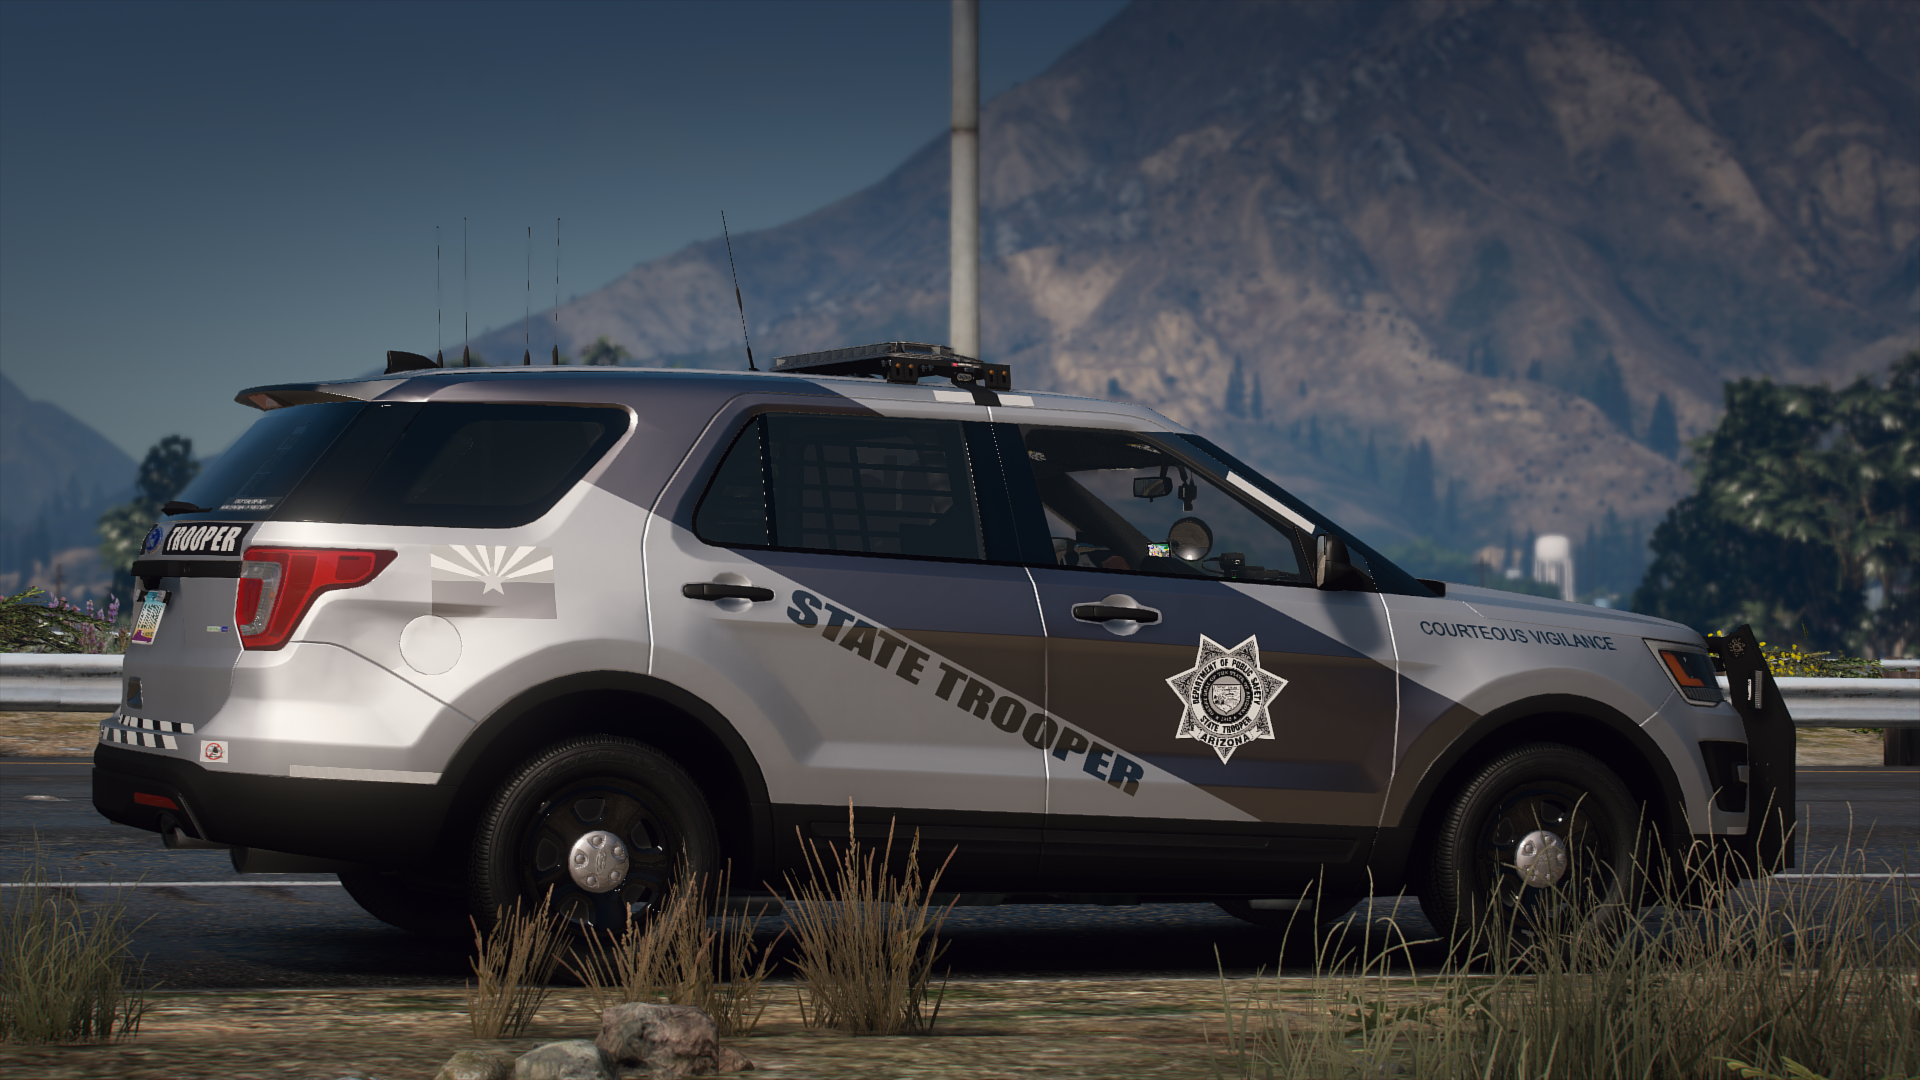 DPS in the Mountains